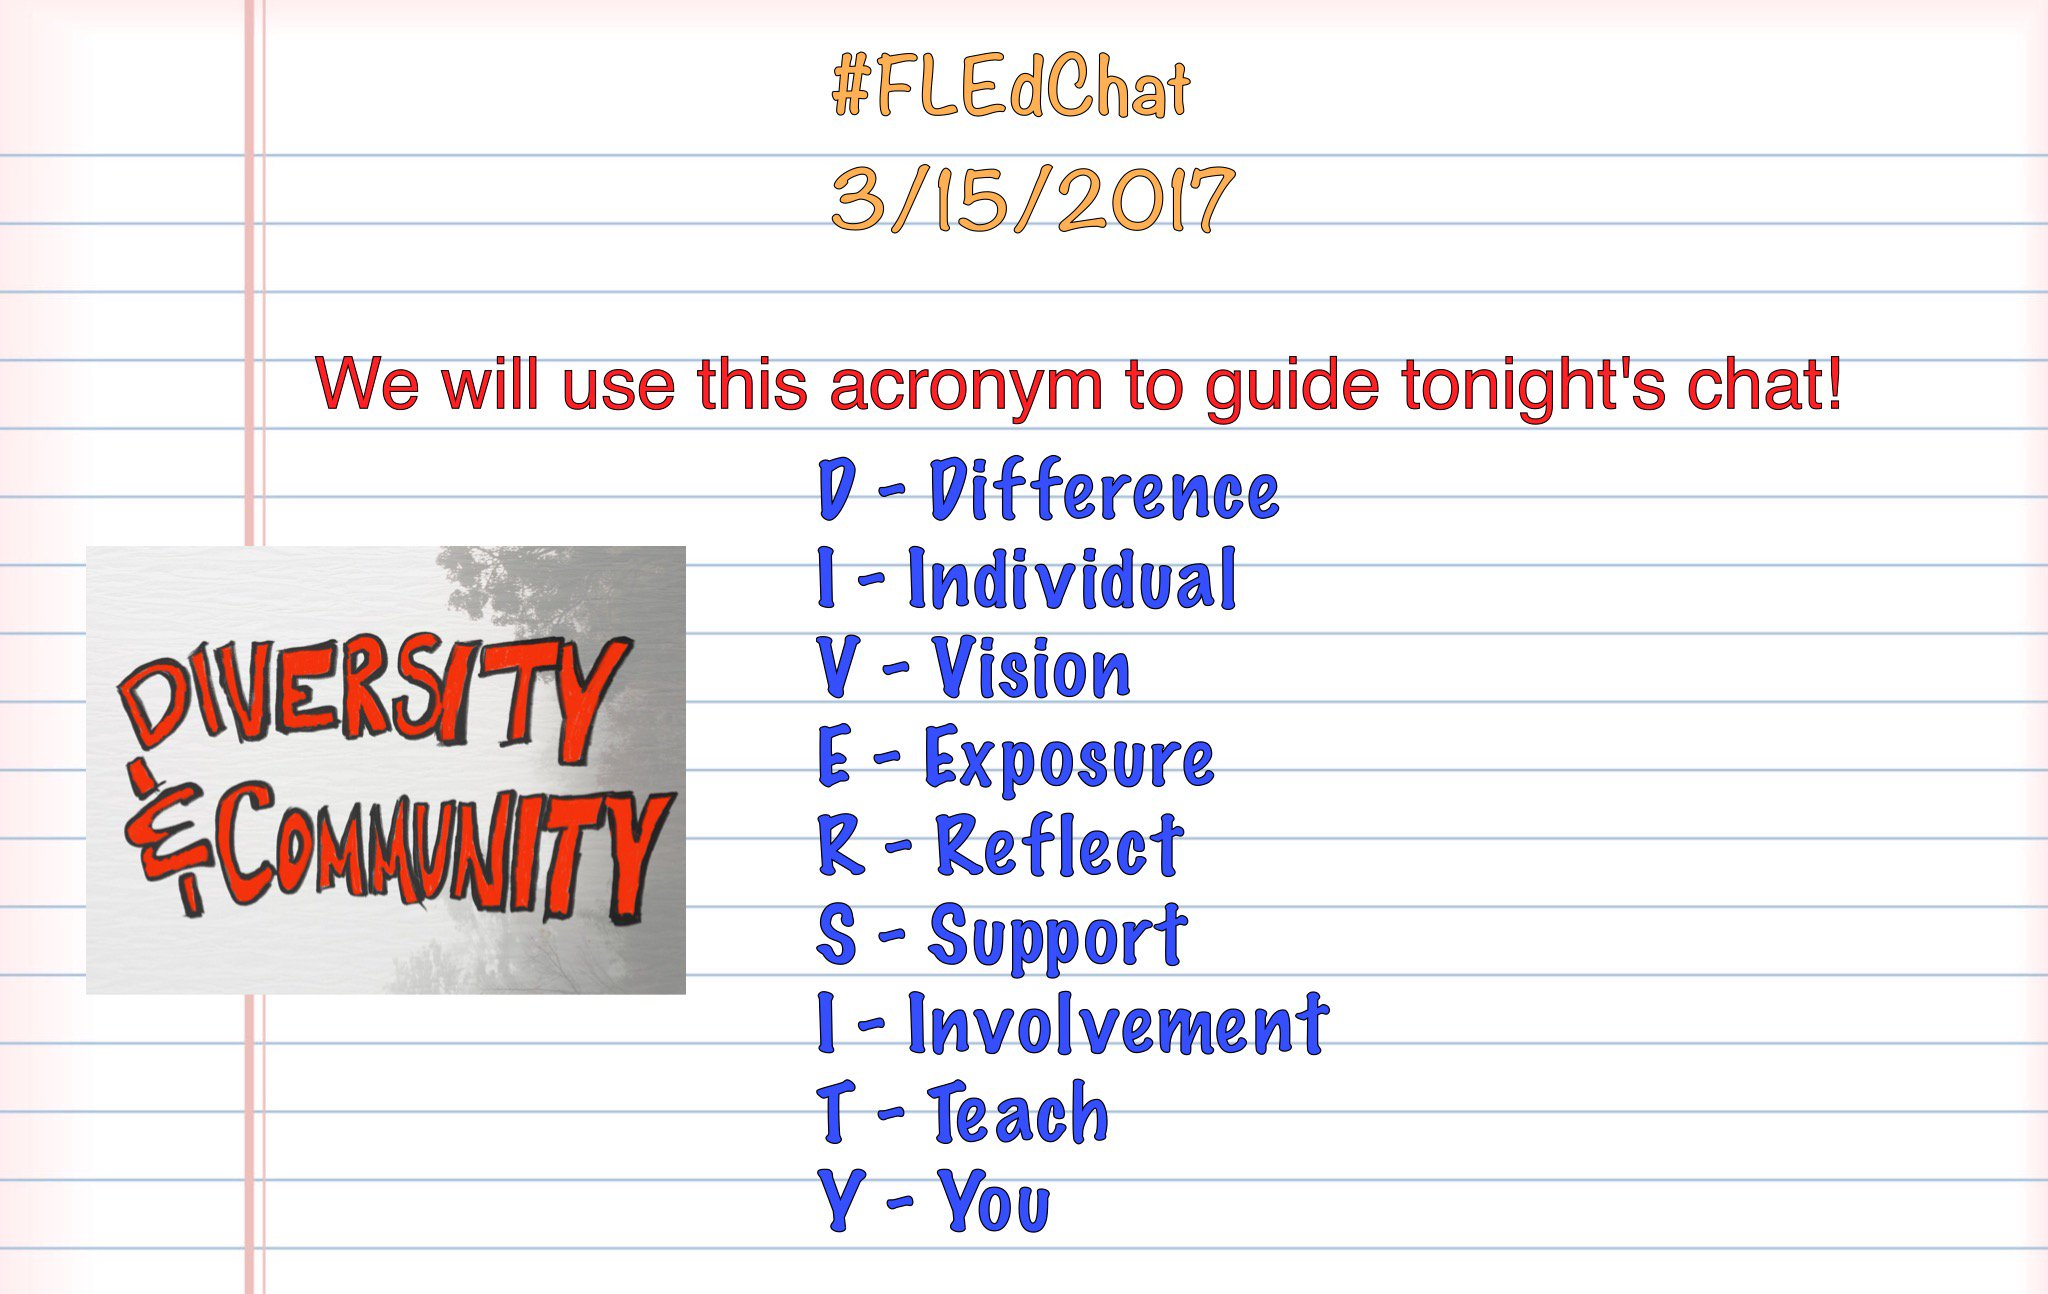 We will use this 'diversity' acronym to guide tonight's chat. Thanks for being here everyone! #FLEdChat https://t.co/Rr6eclxKRp